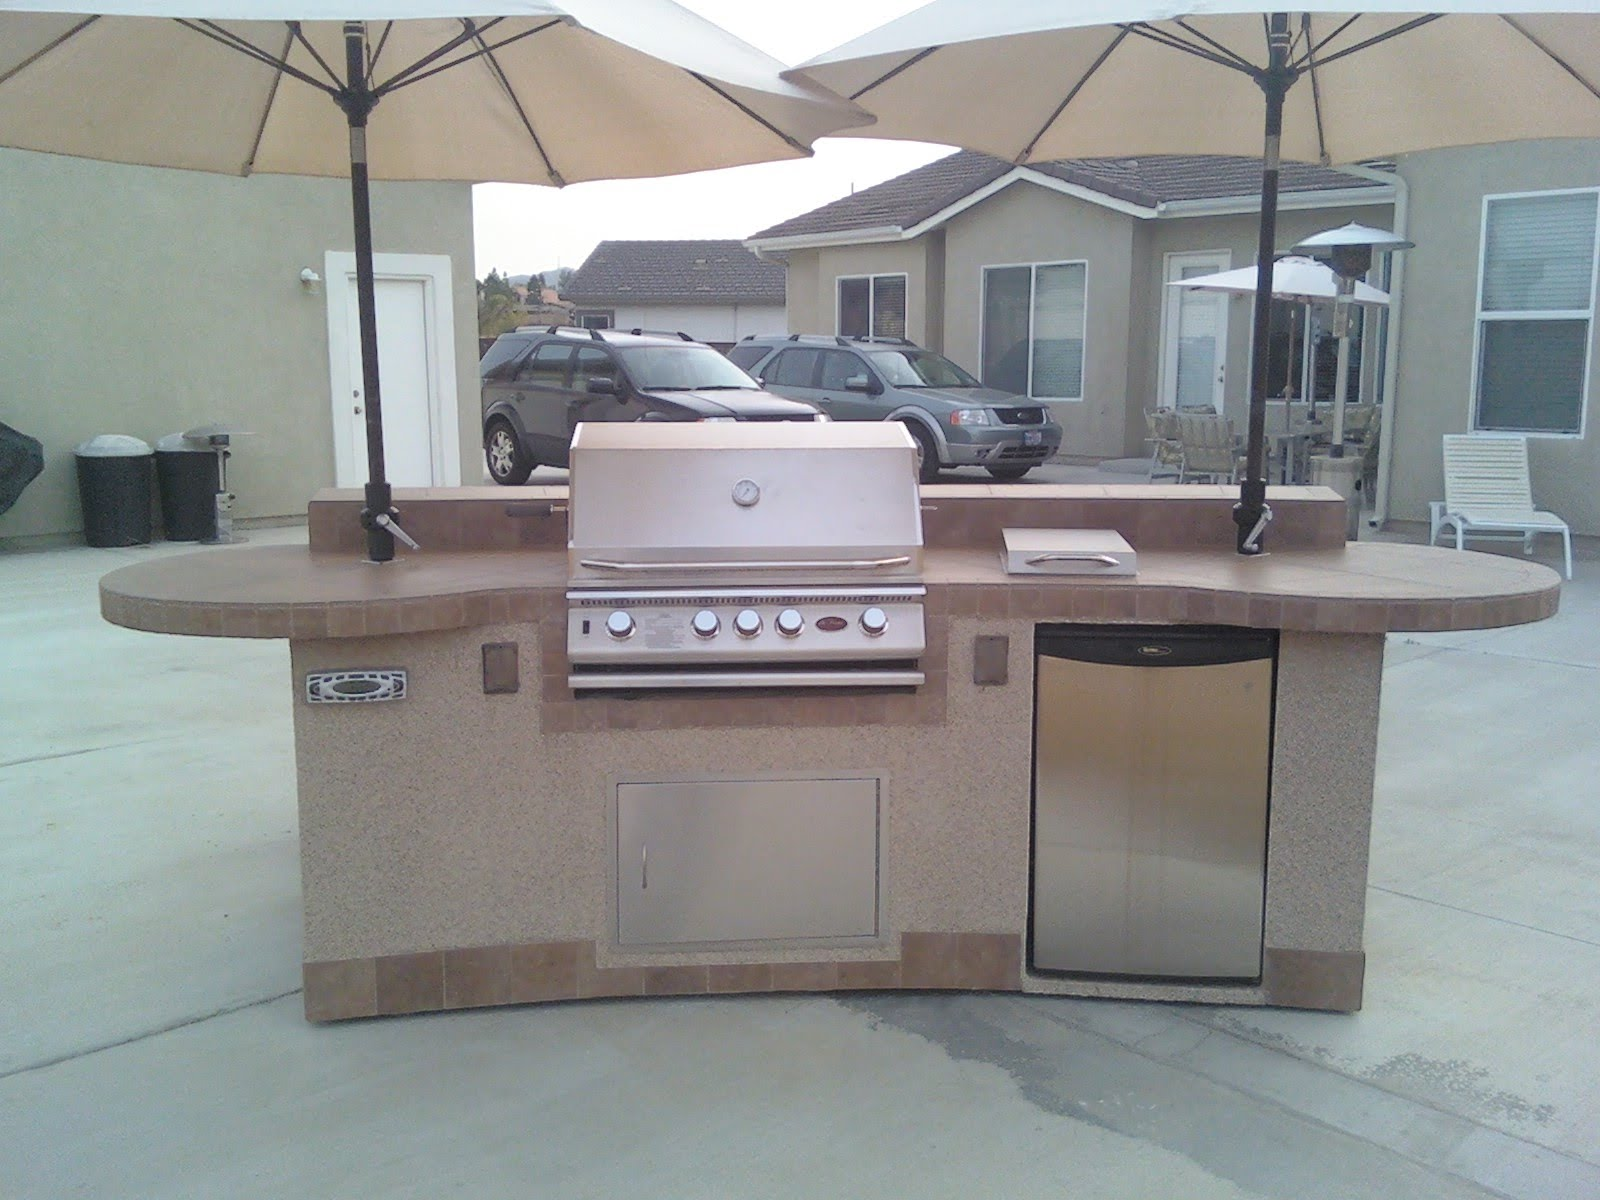 Outdoor kitchen construction tiles tiles and more tiles for Outdoor kitchen contractors